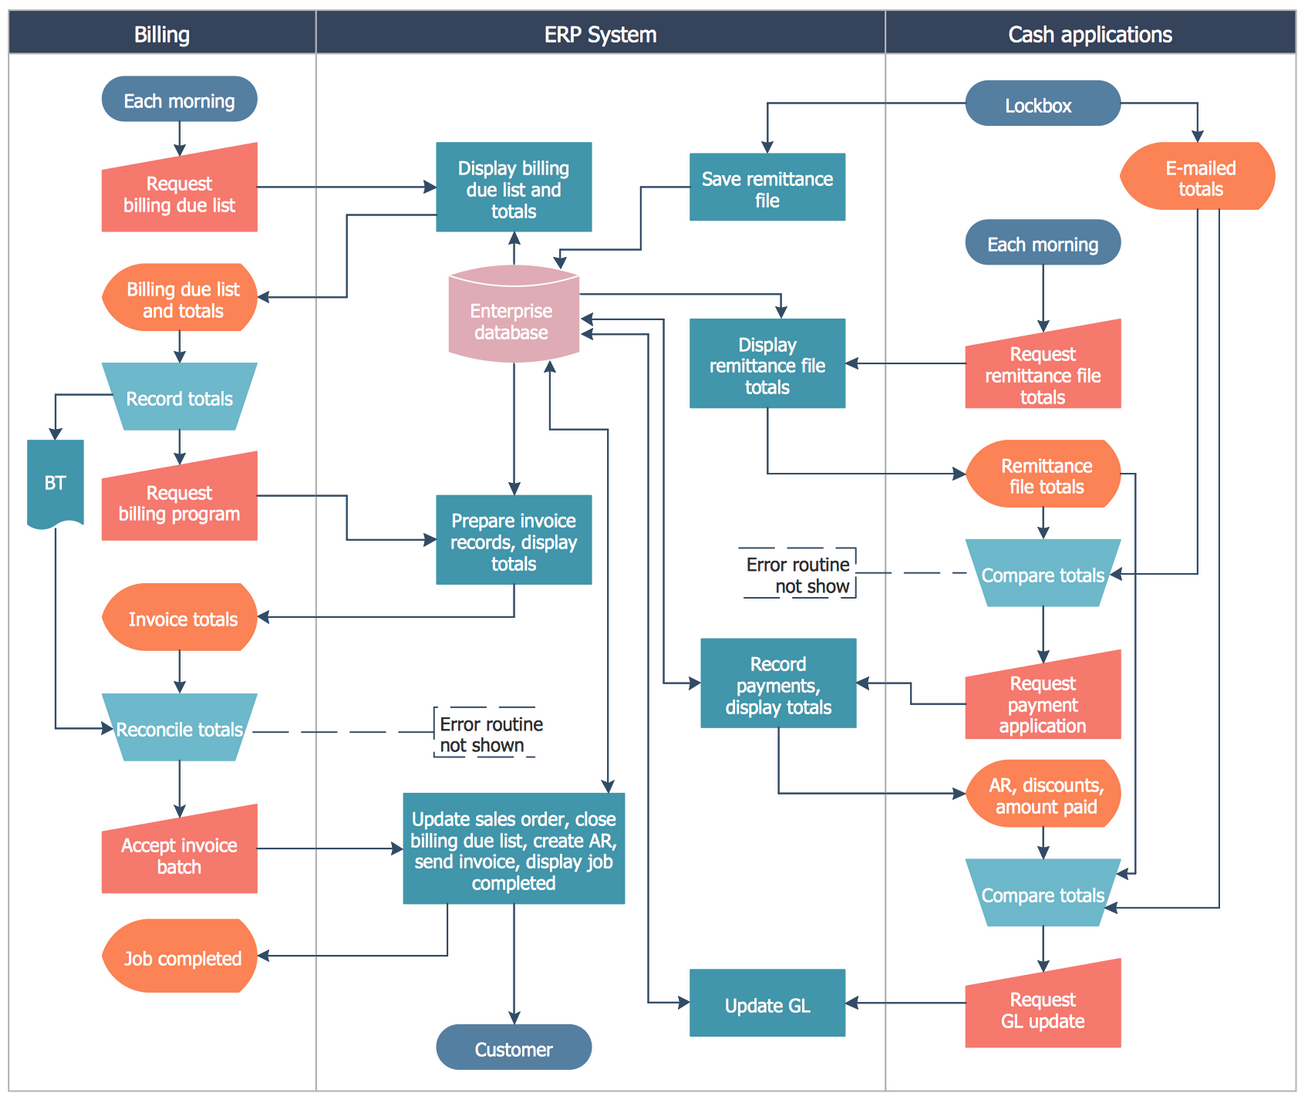 Cross-Functional Flowchart - Stockbridge System Flowchart